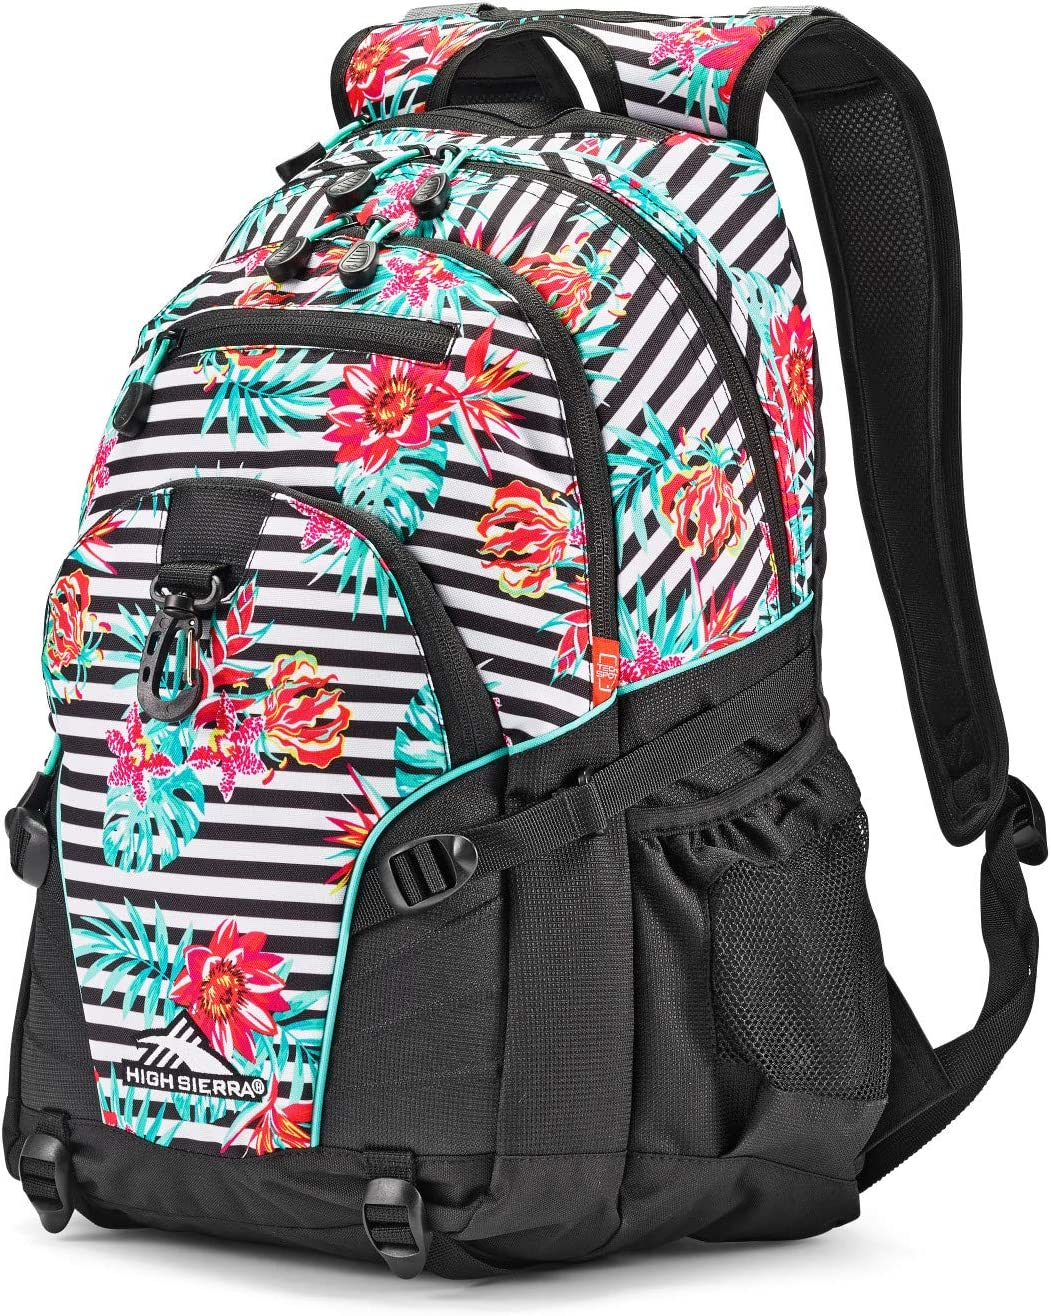 High Sierra Loop Backpack, Tropical Stripe/Black/Aquamarine, One Size